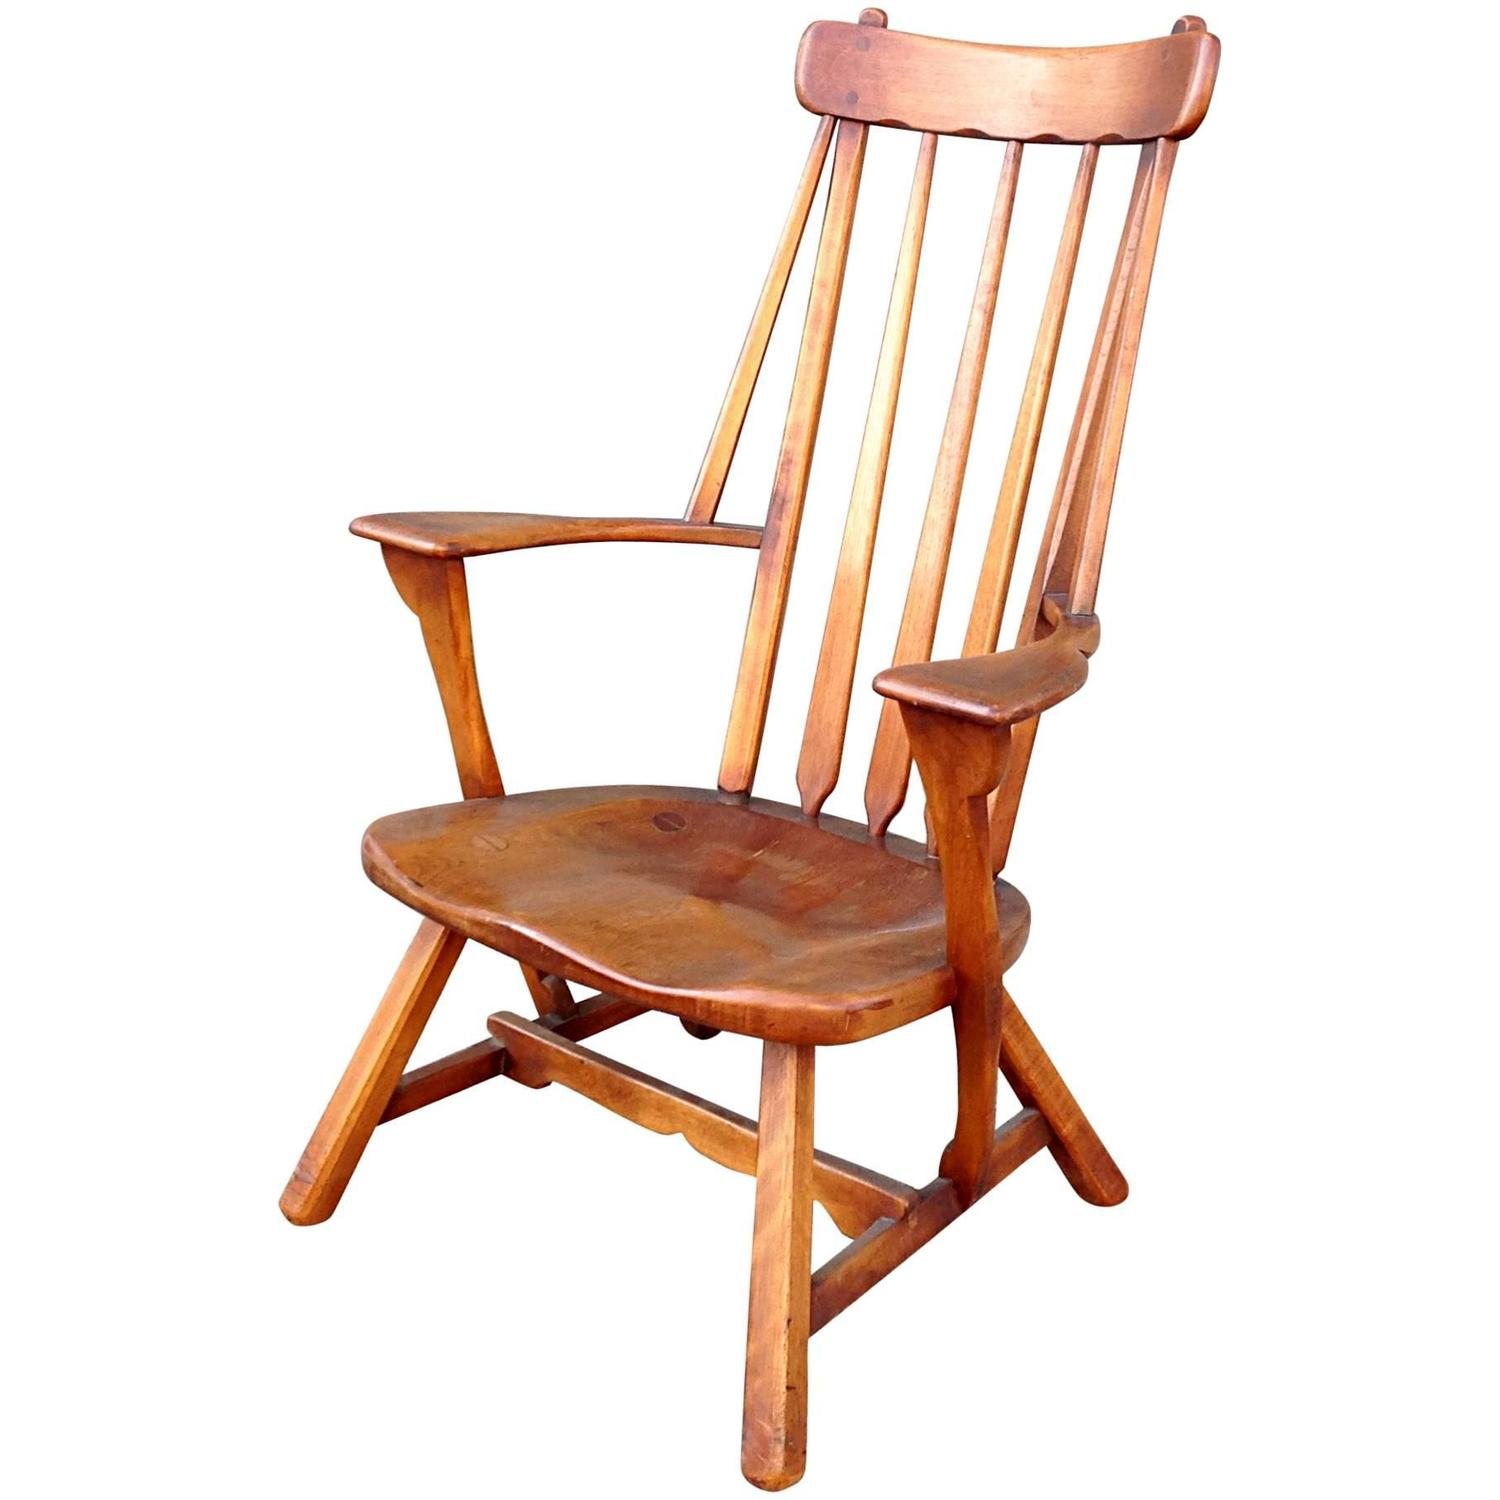 z shaped high chair ebay linen covers modernist maple back armchair by sykes for sale at